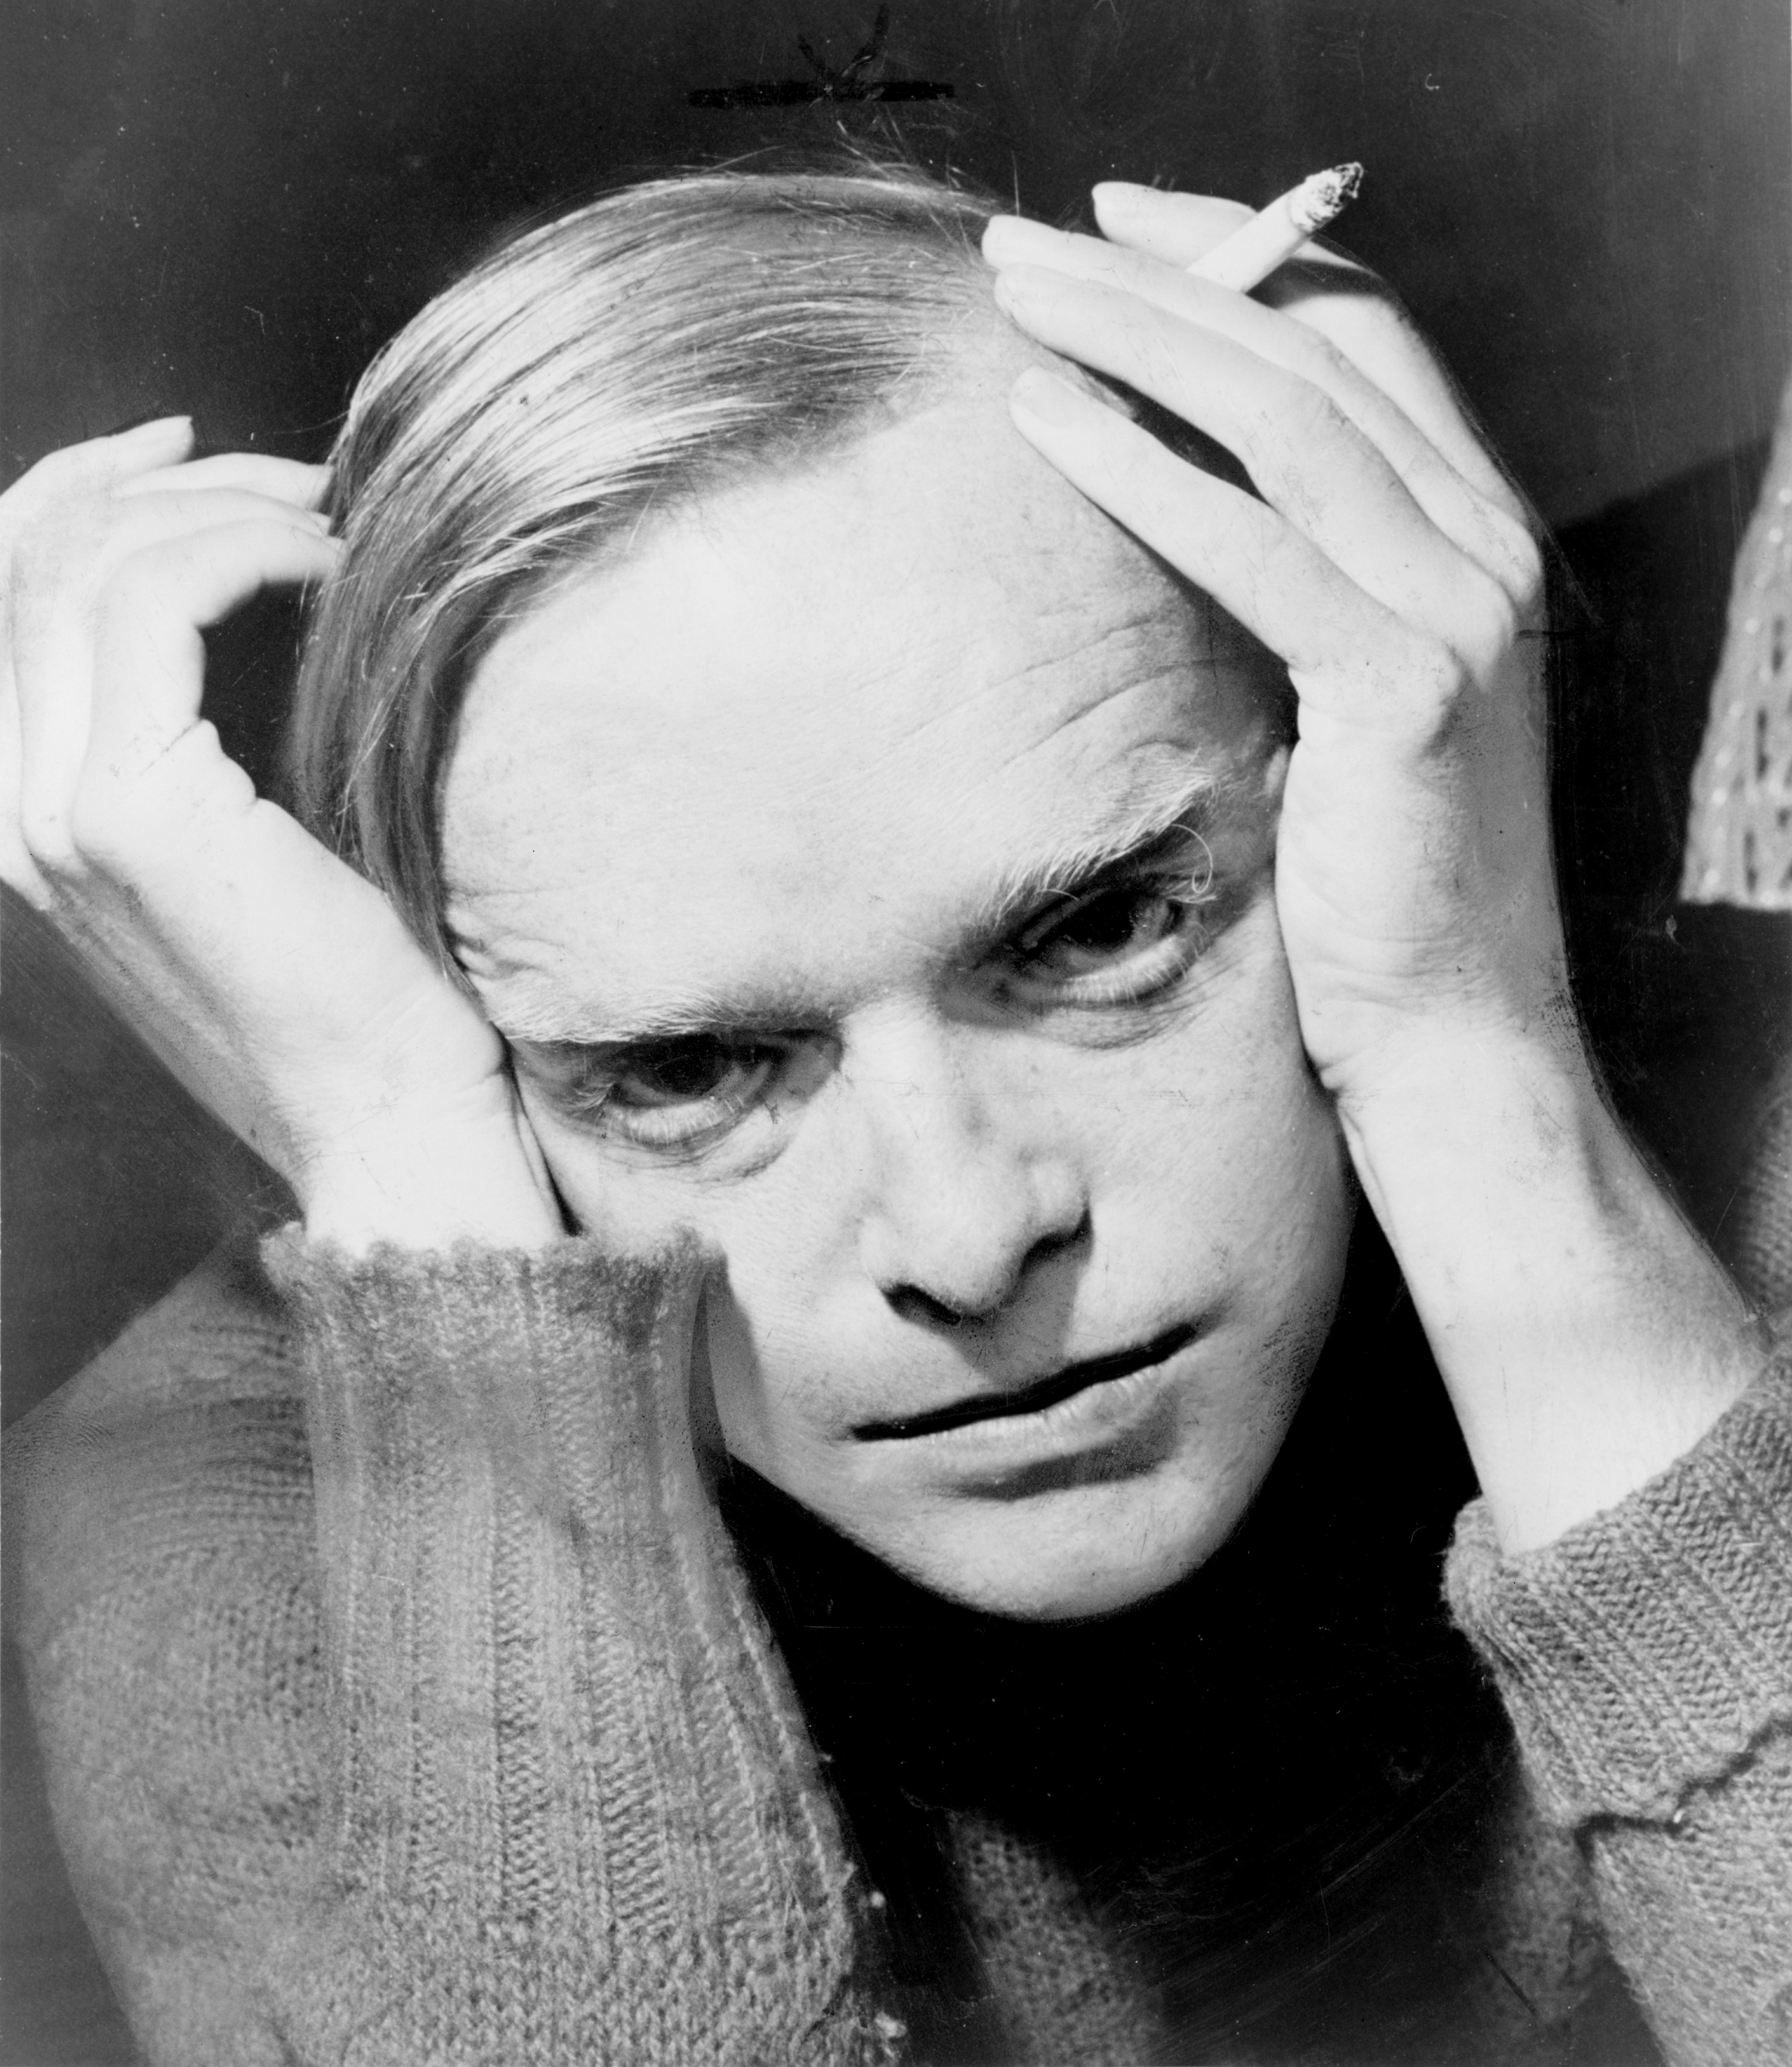 Truman Capote in 1959, during the time he lived at 7 Willow Street